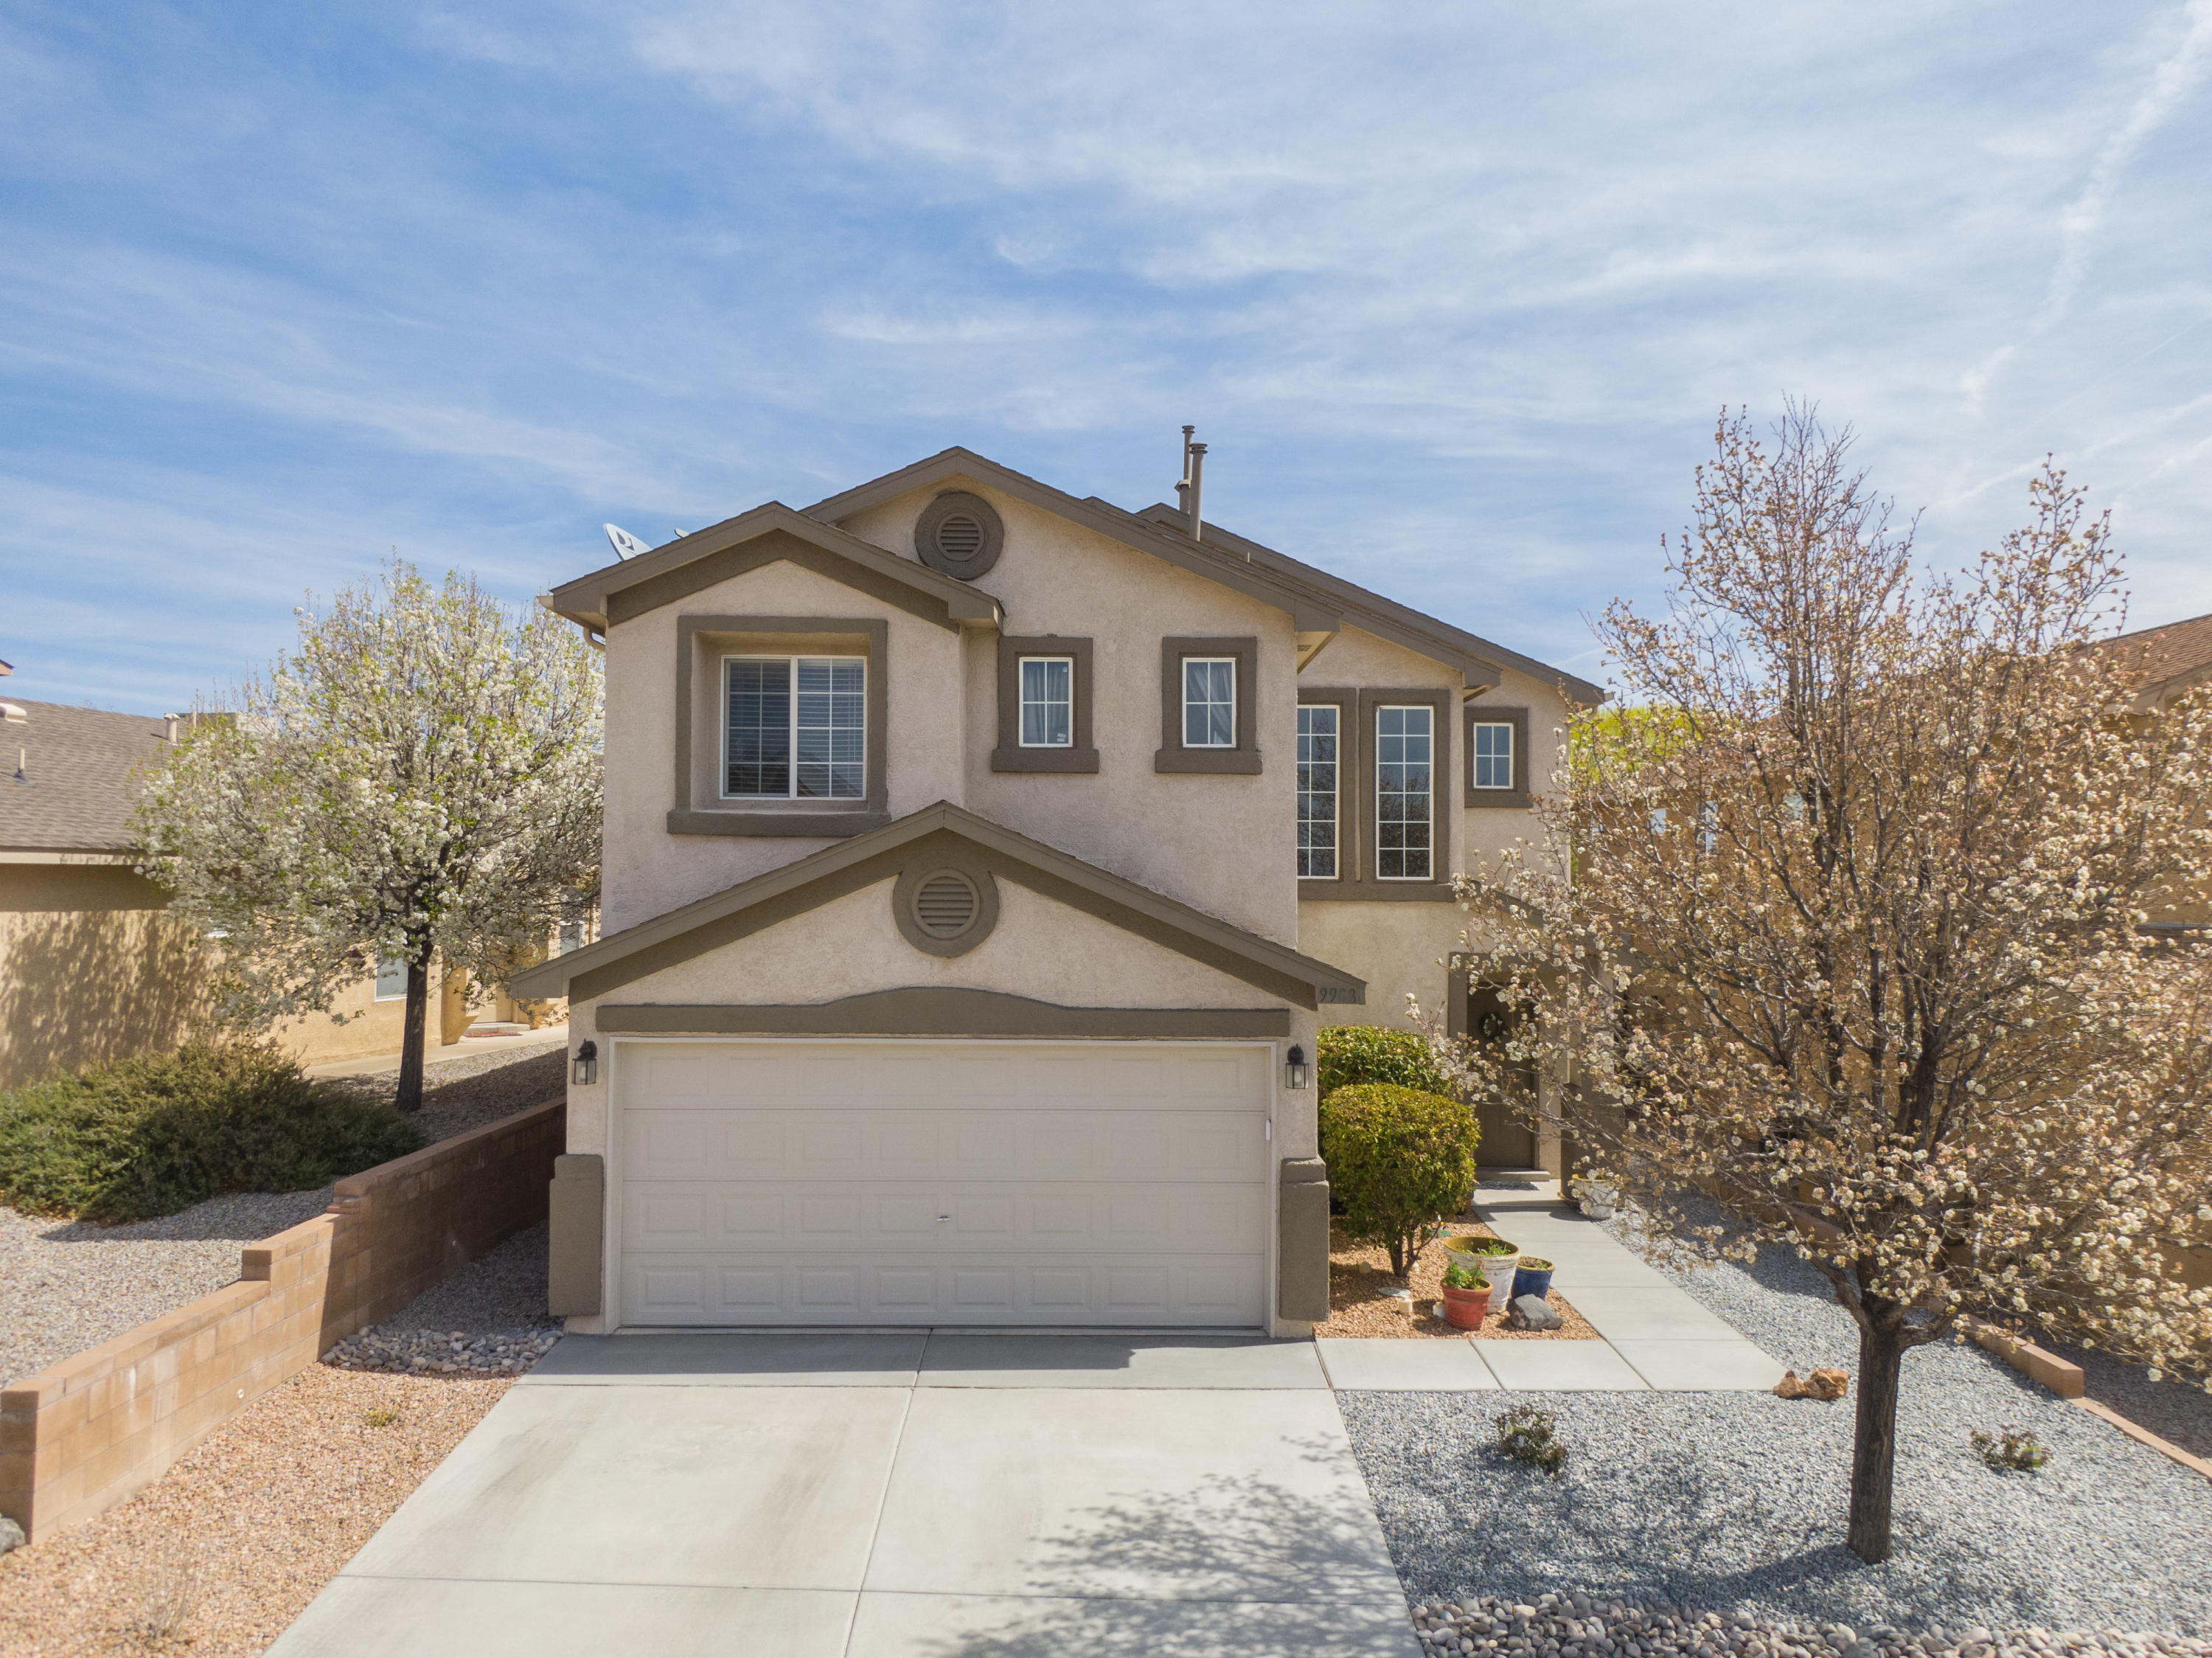 Open house on Saturday April 3rd 11:30am -2:00pm. Located in the Ventana Ranch West subdivision of Albuquerque NM sits this lovely two story DR Horton home. Featuring luxury vinyl flooring upon entry, updated kitchen and refrigerated air only a little over a year old. Home was recently replumbed.  Don't miss the walking paths and parks! This beautiful house is a must see!